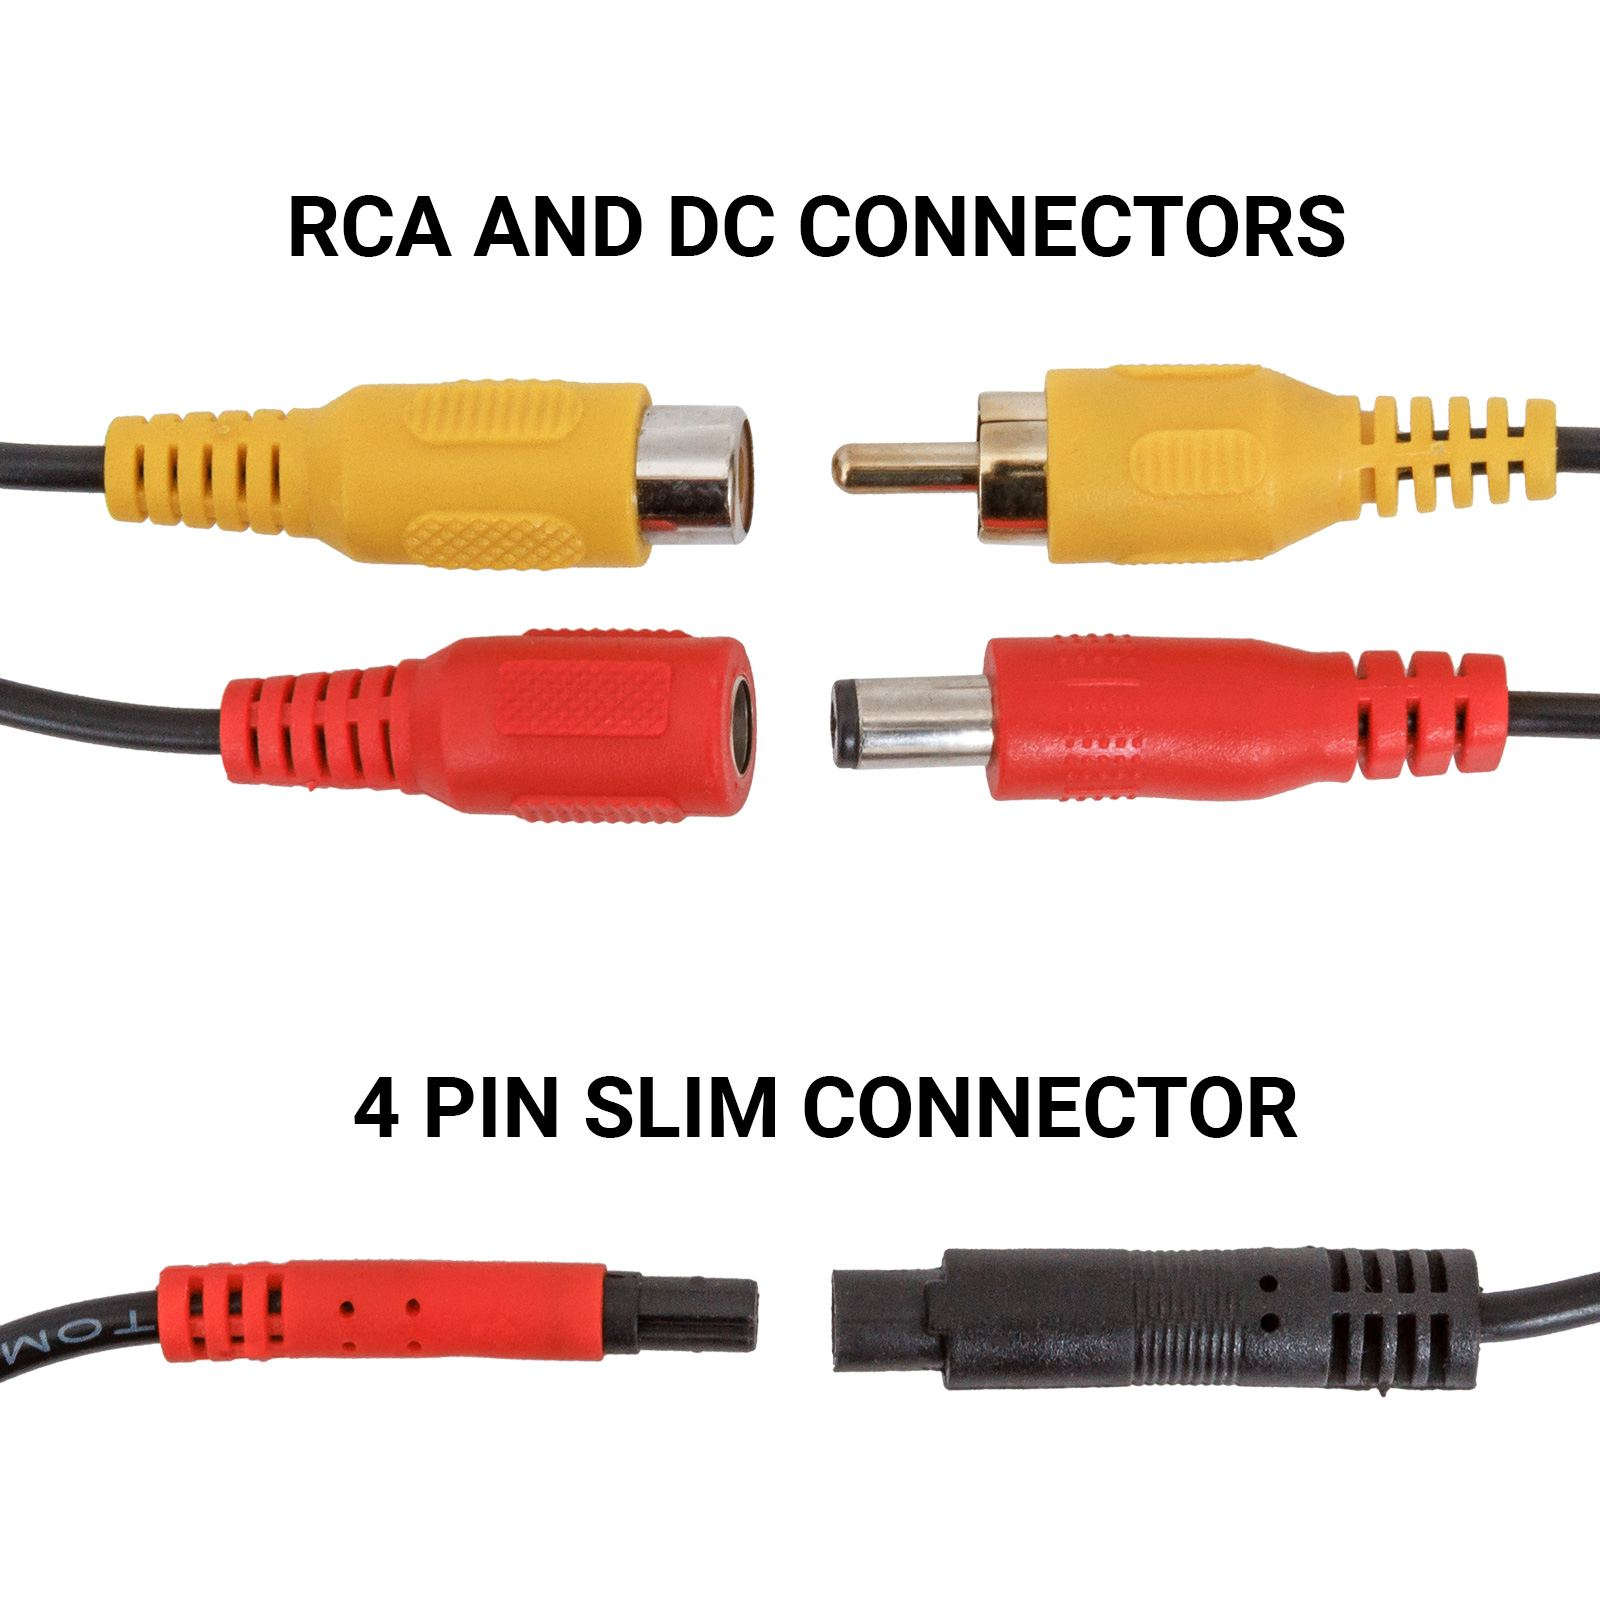 Comparison of video signal connectors